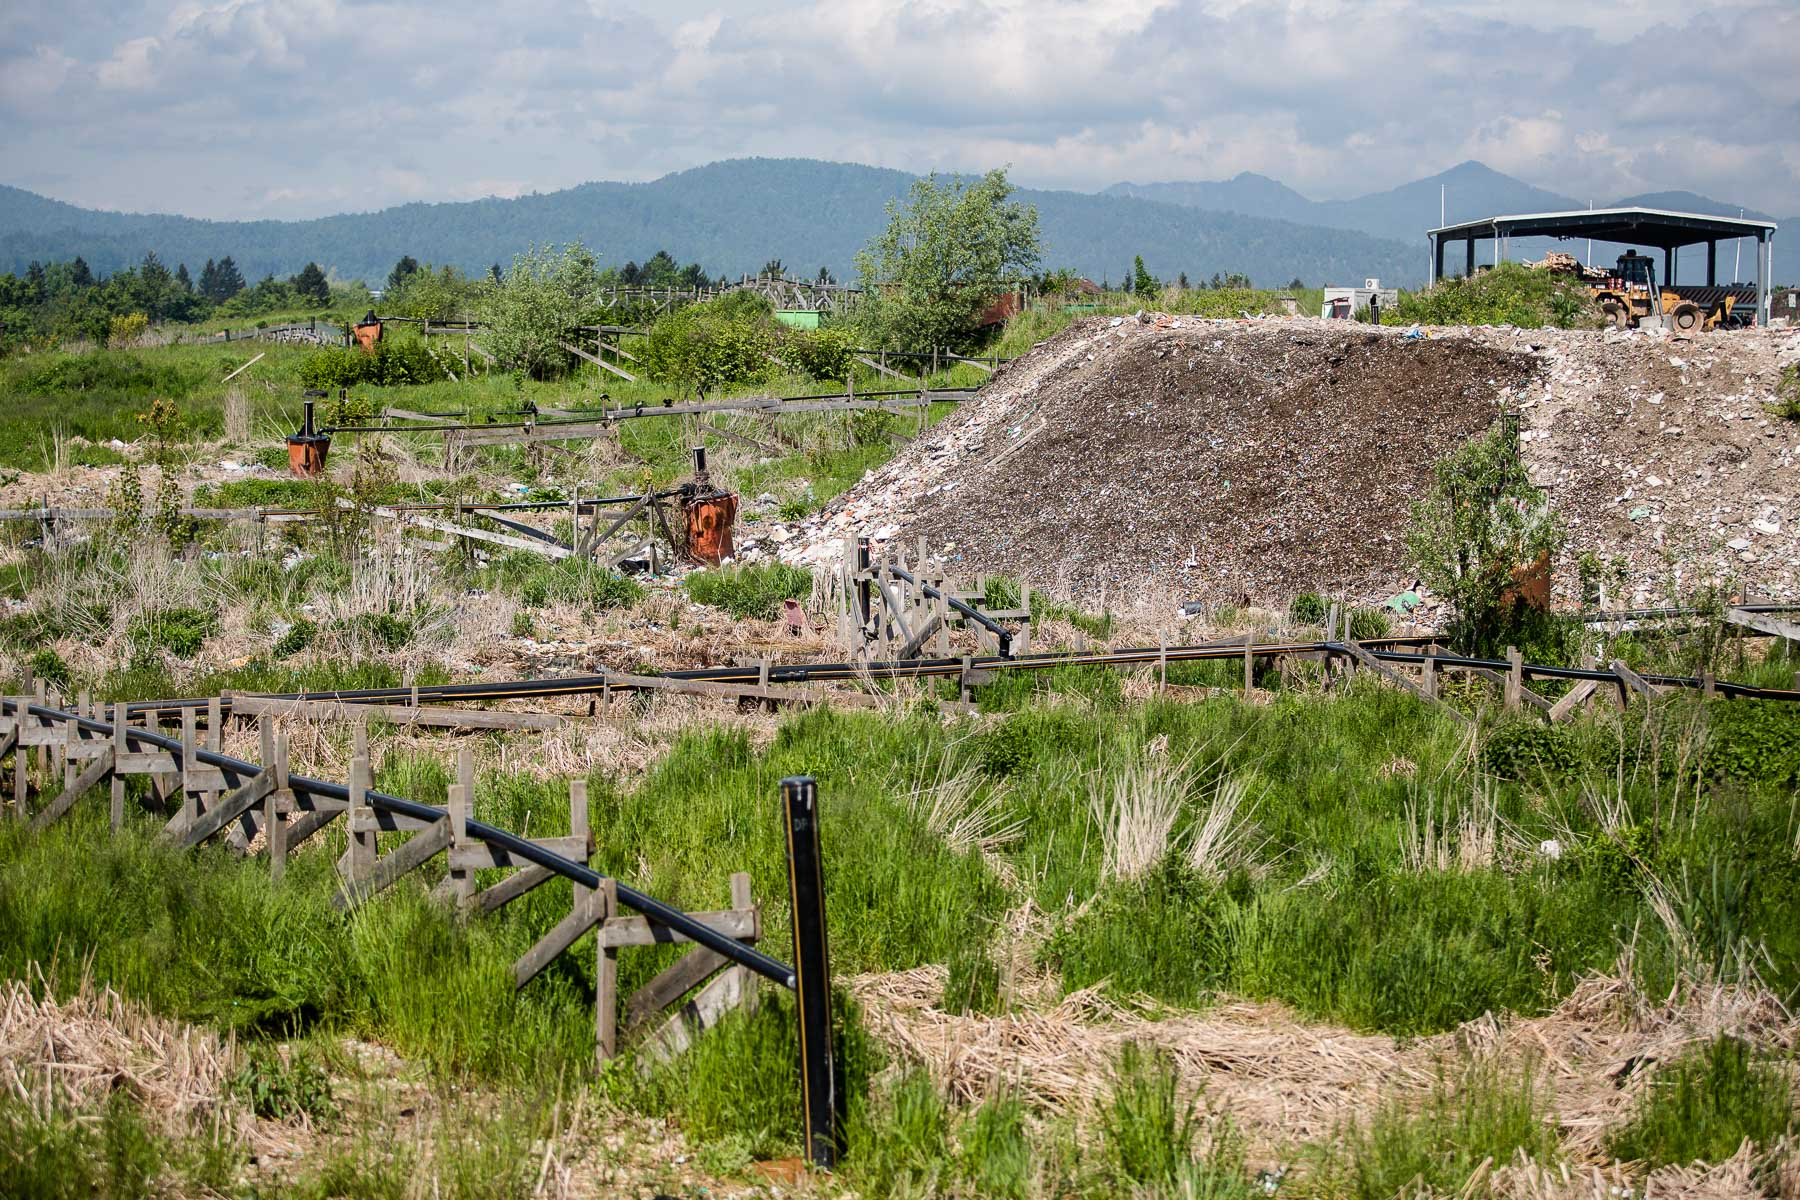 A mound of less than 5% of landfilled residual waste is seen in Ljubljana's landfill on May 10, 2019.